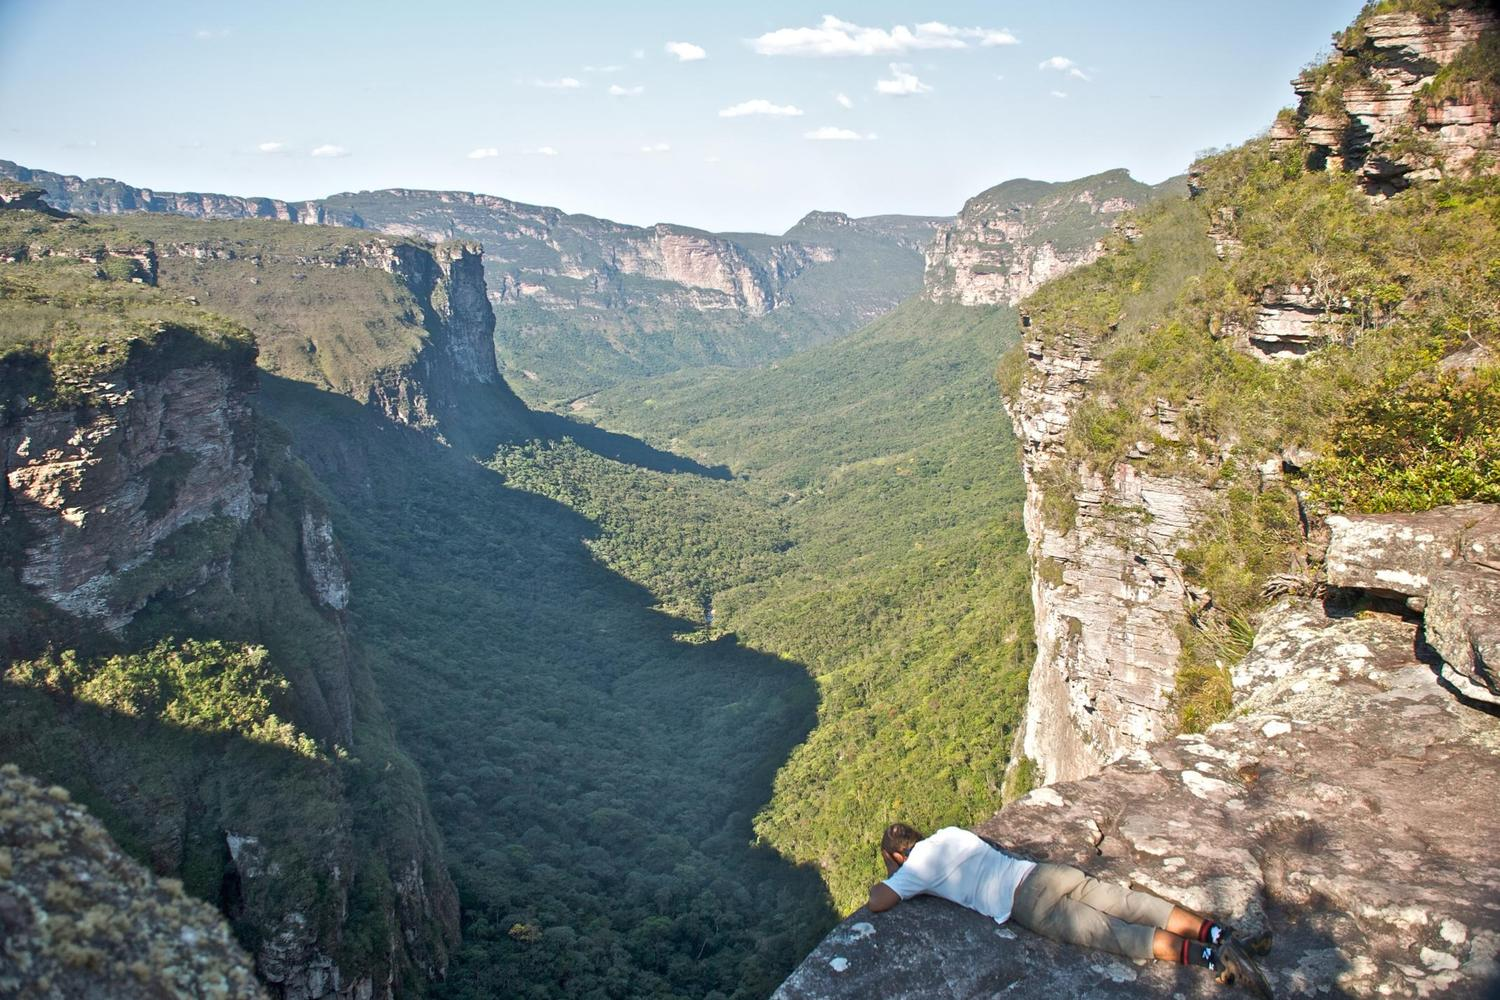 In dry season many of the waterfalls in the Chapada Diamantina are dry, allowing for some spectacular photos